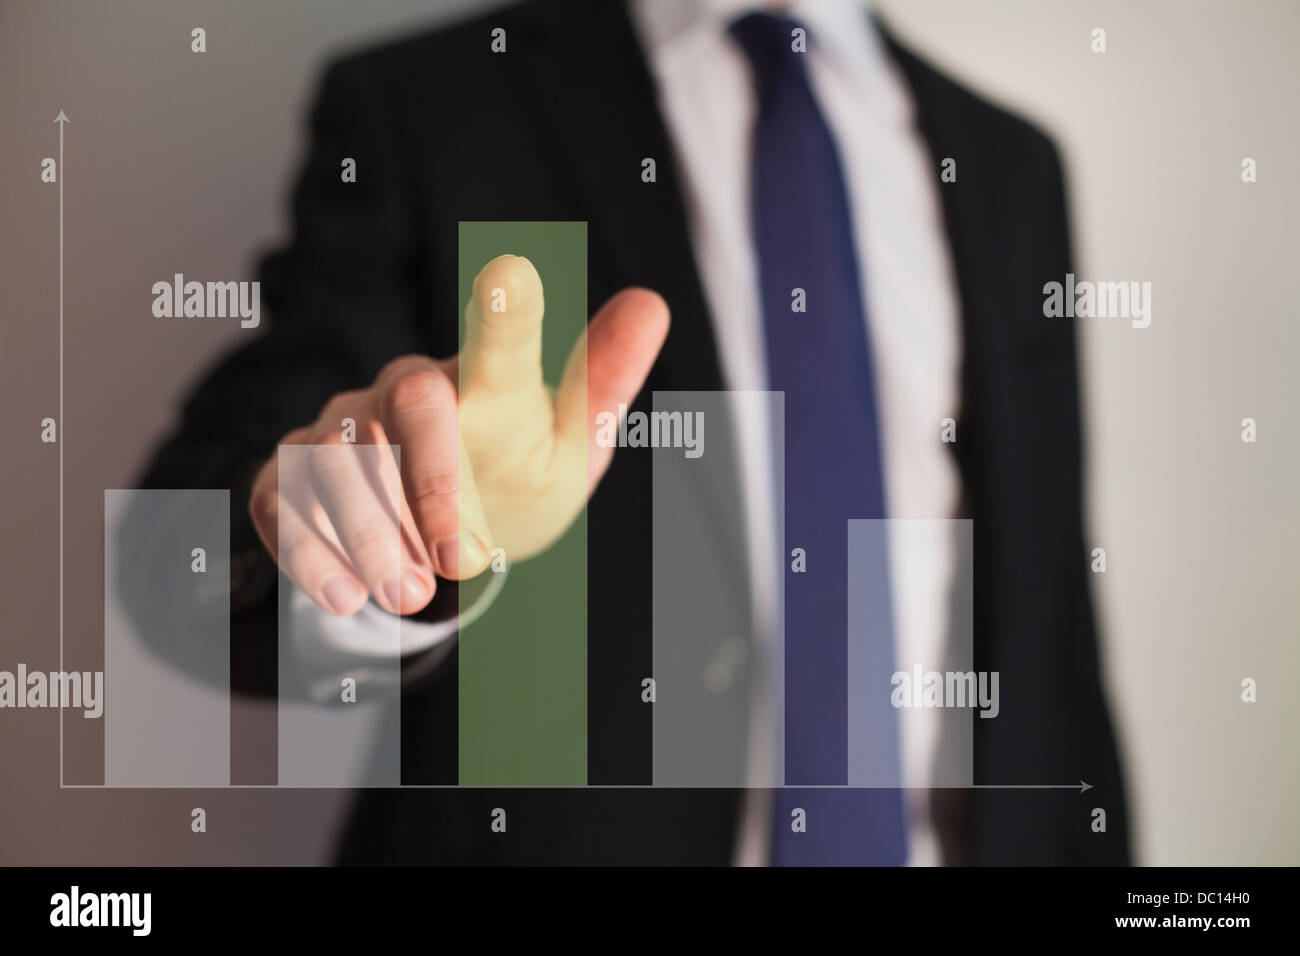 Businessman presenting a successful sustainable development on a bar chart - Stock Image